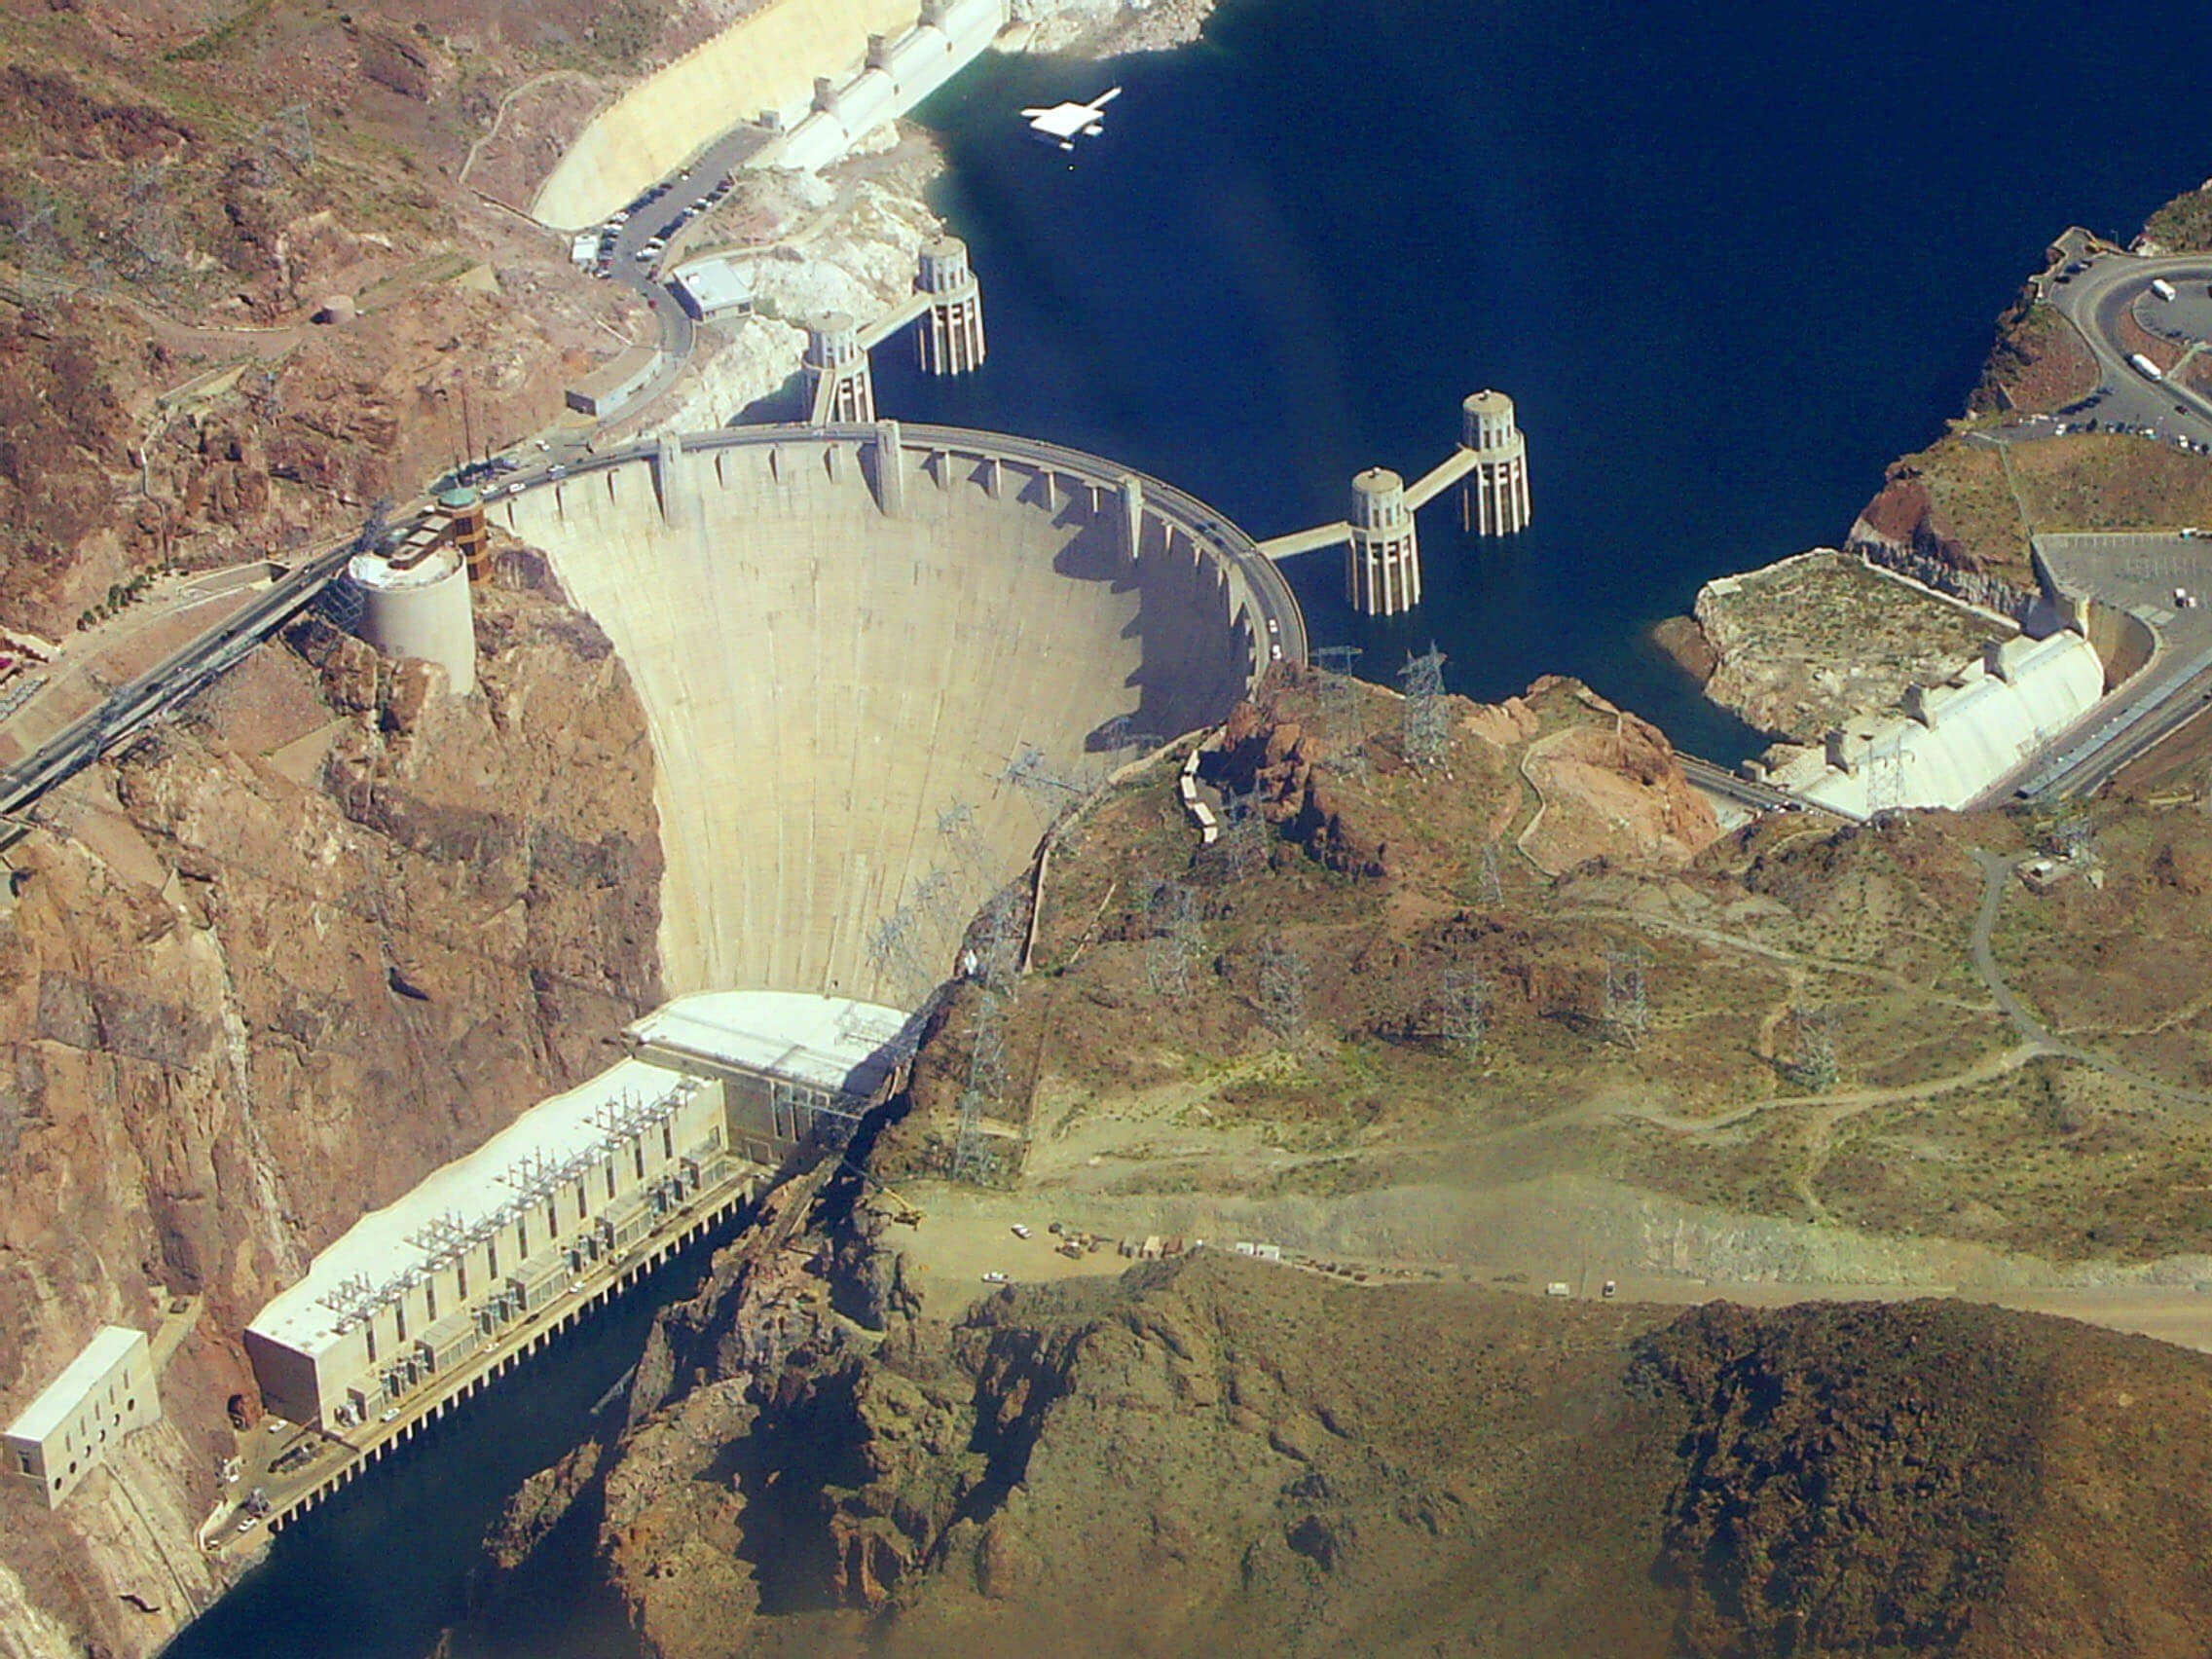 Image of Hoover Dam